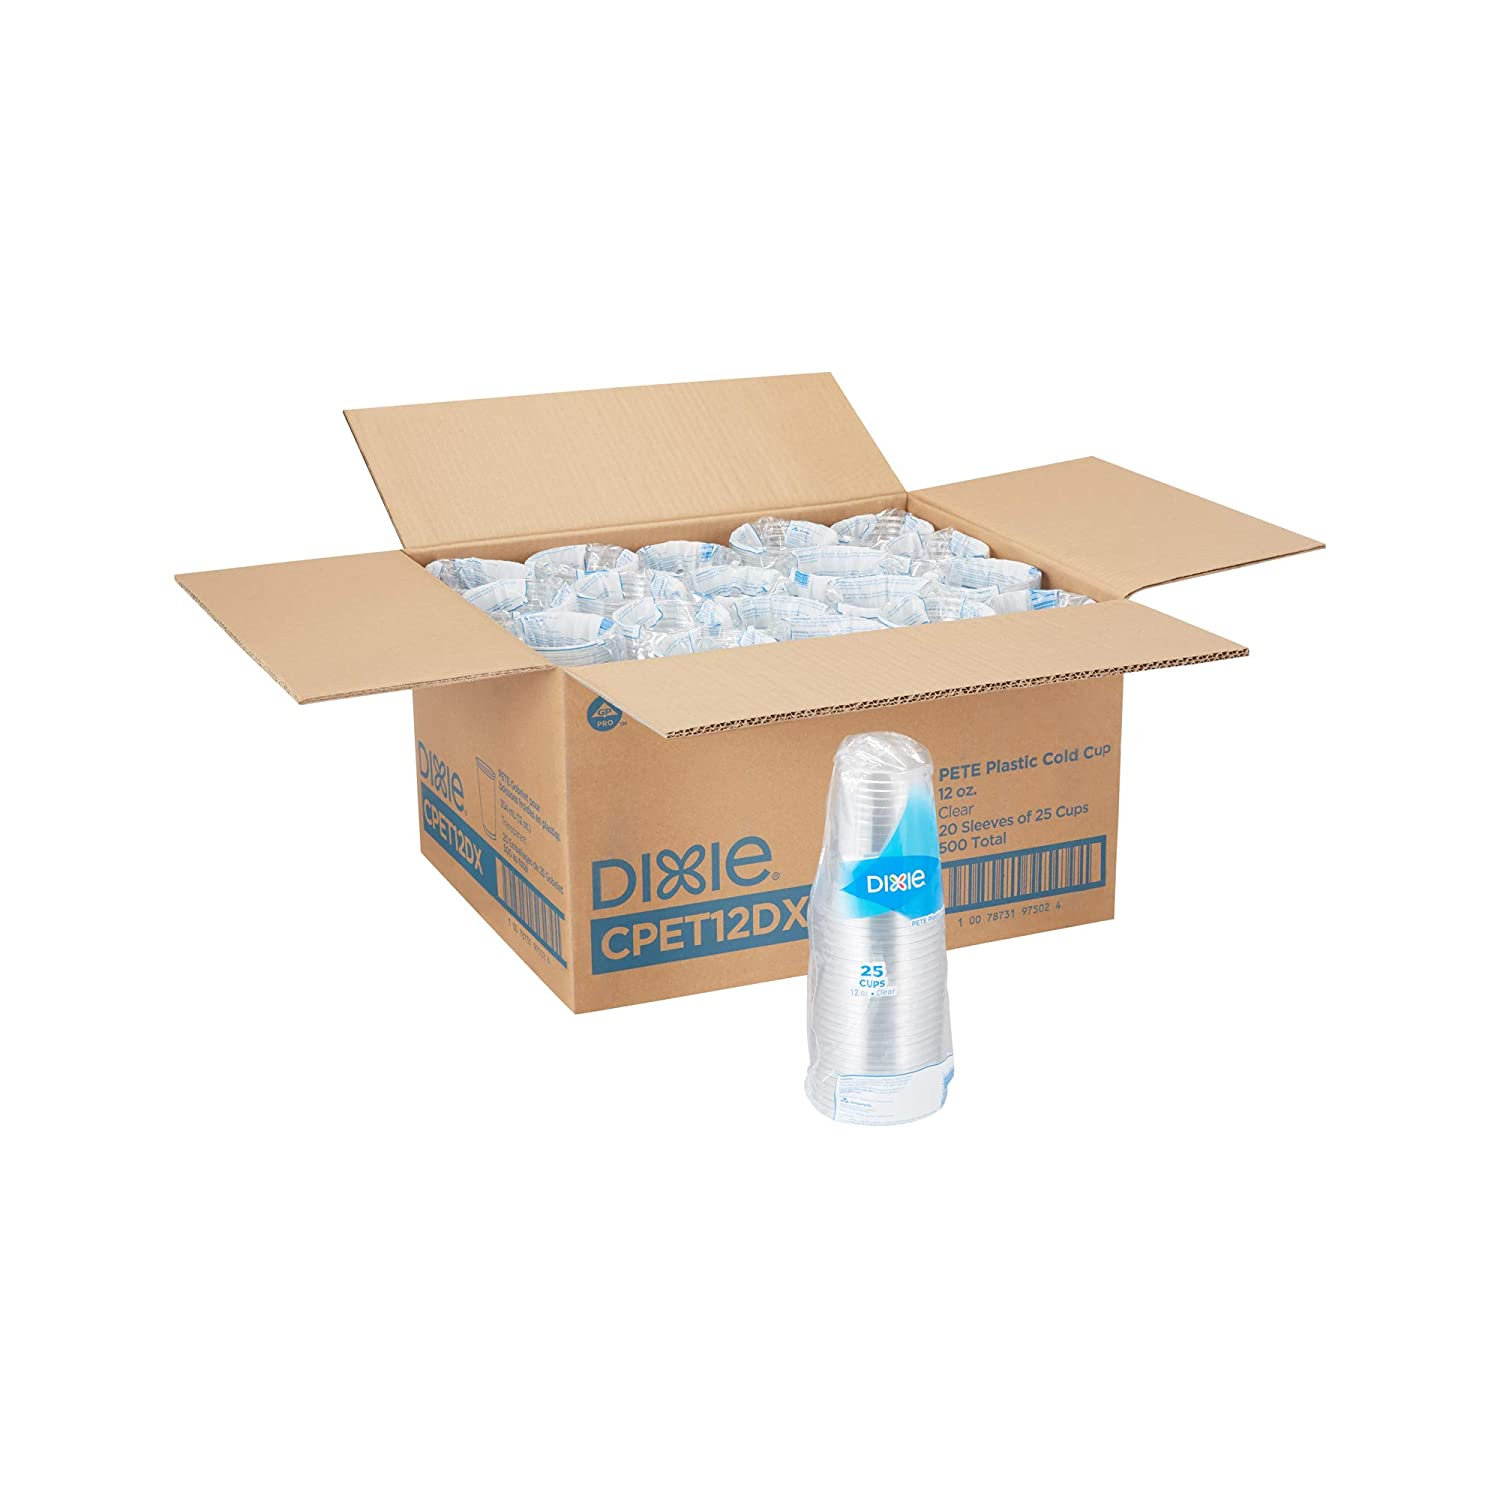 Dixie 12 oz PETE Plastic Cold Cups, CPET12DX, Clear, 25 Cups per Sleeve, 20 Sleeves per Case